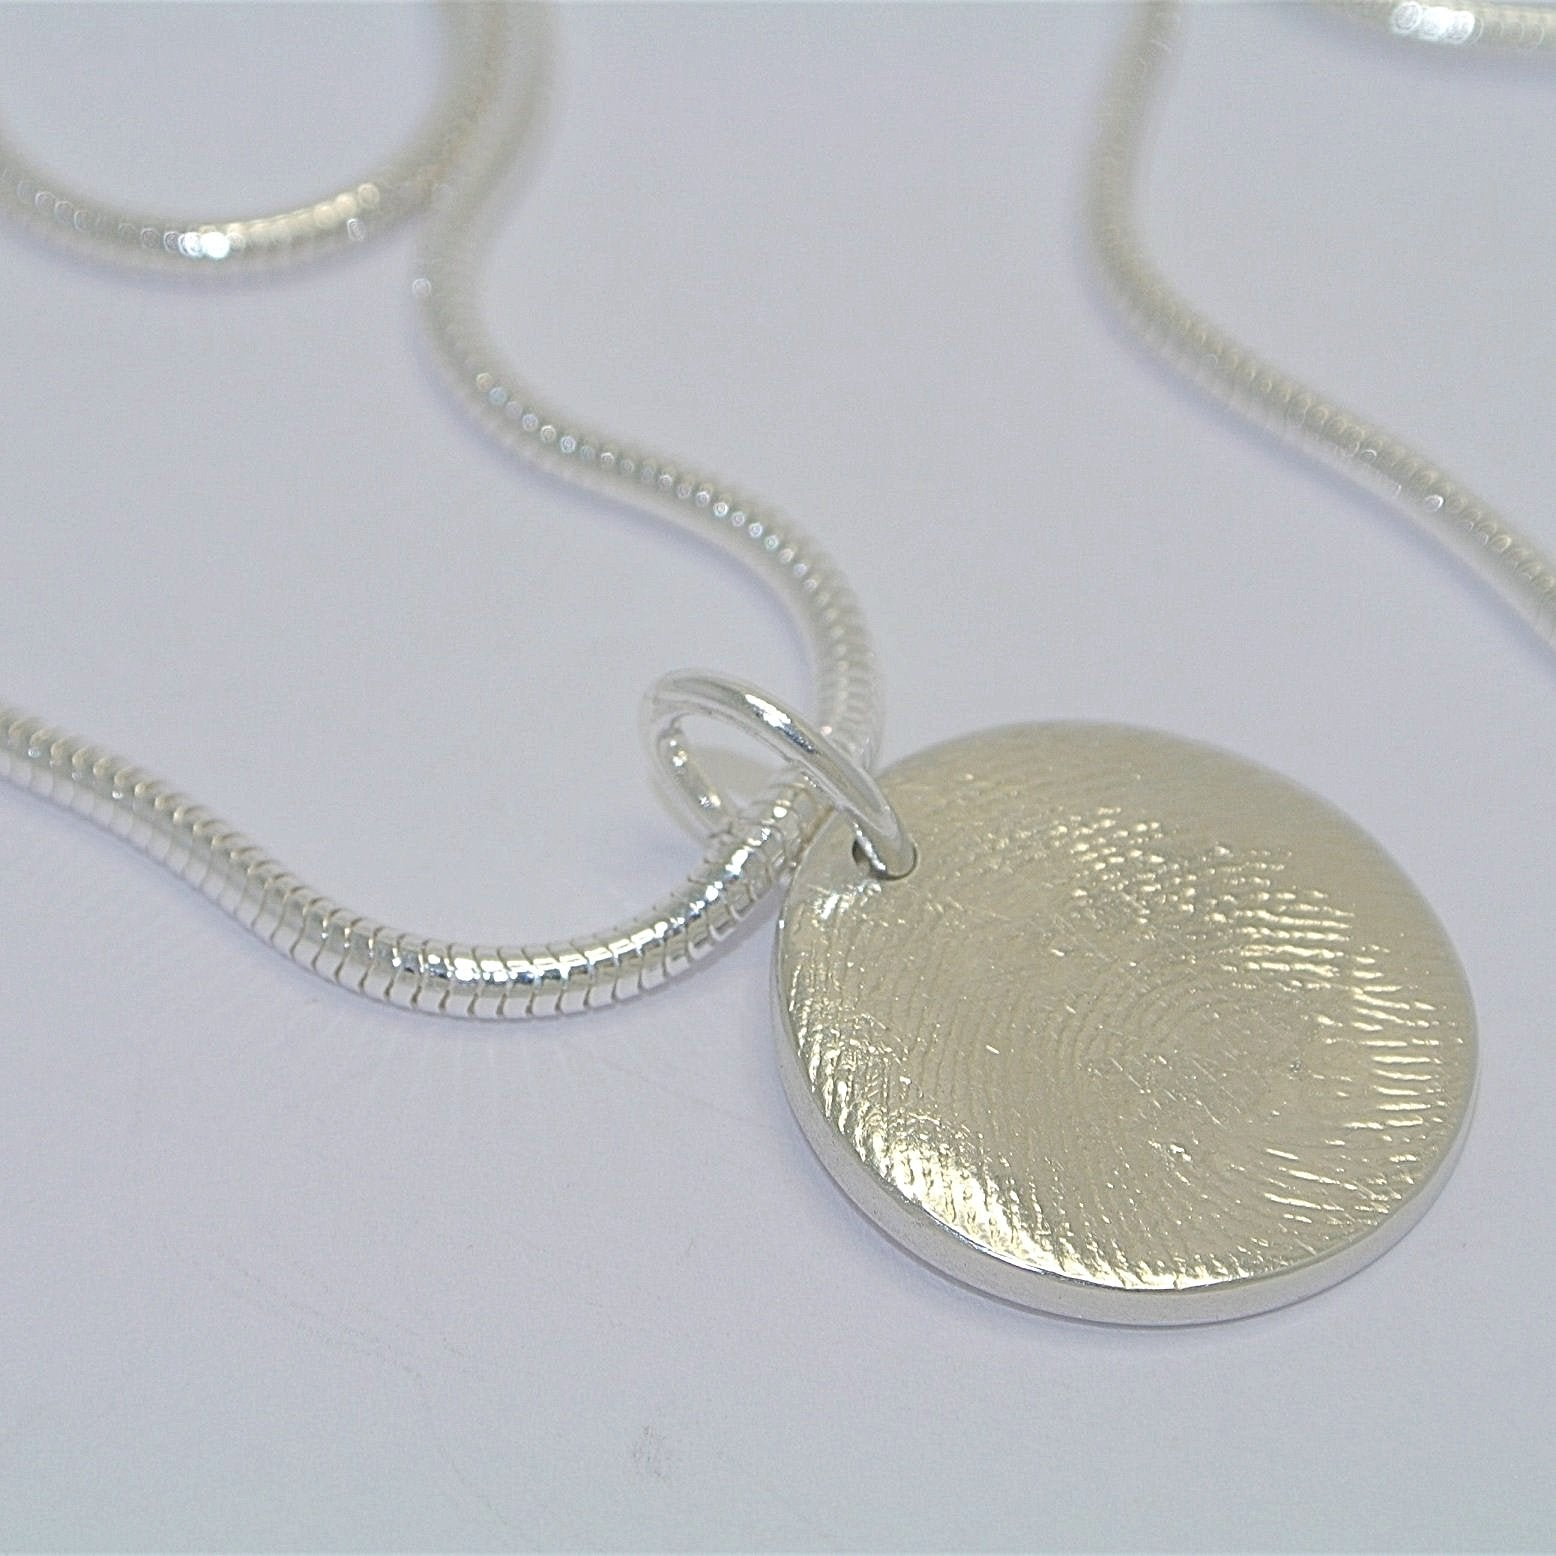 Full Fingerprint Necklace